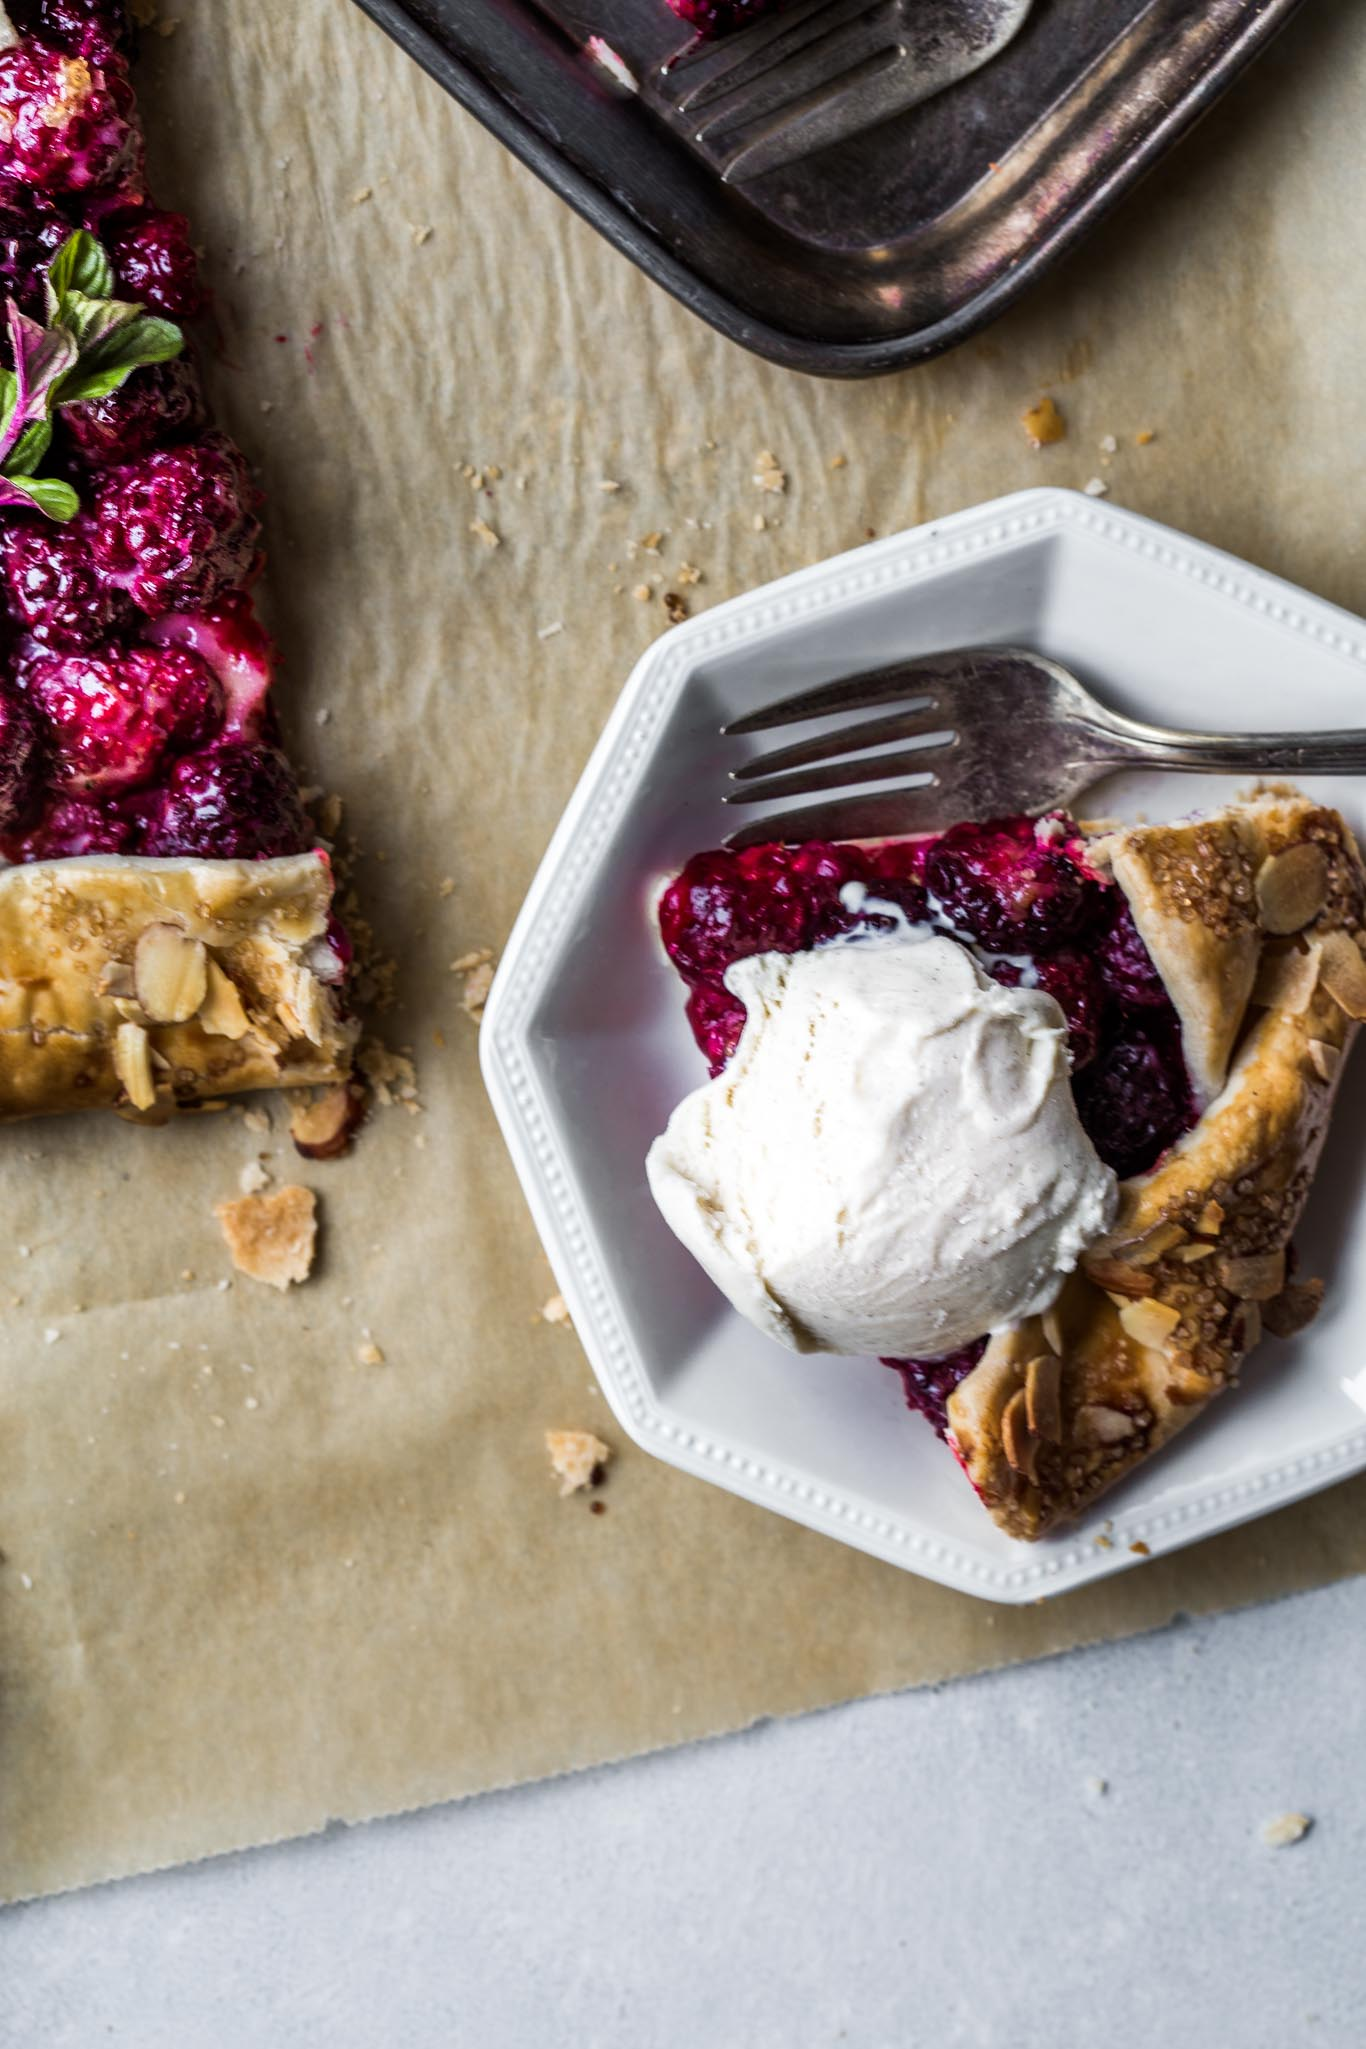 Piece of blackberry galette with scoop of ice cream.